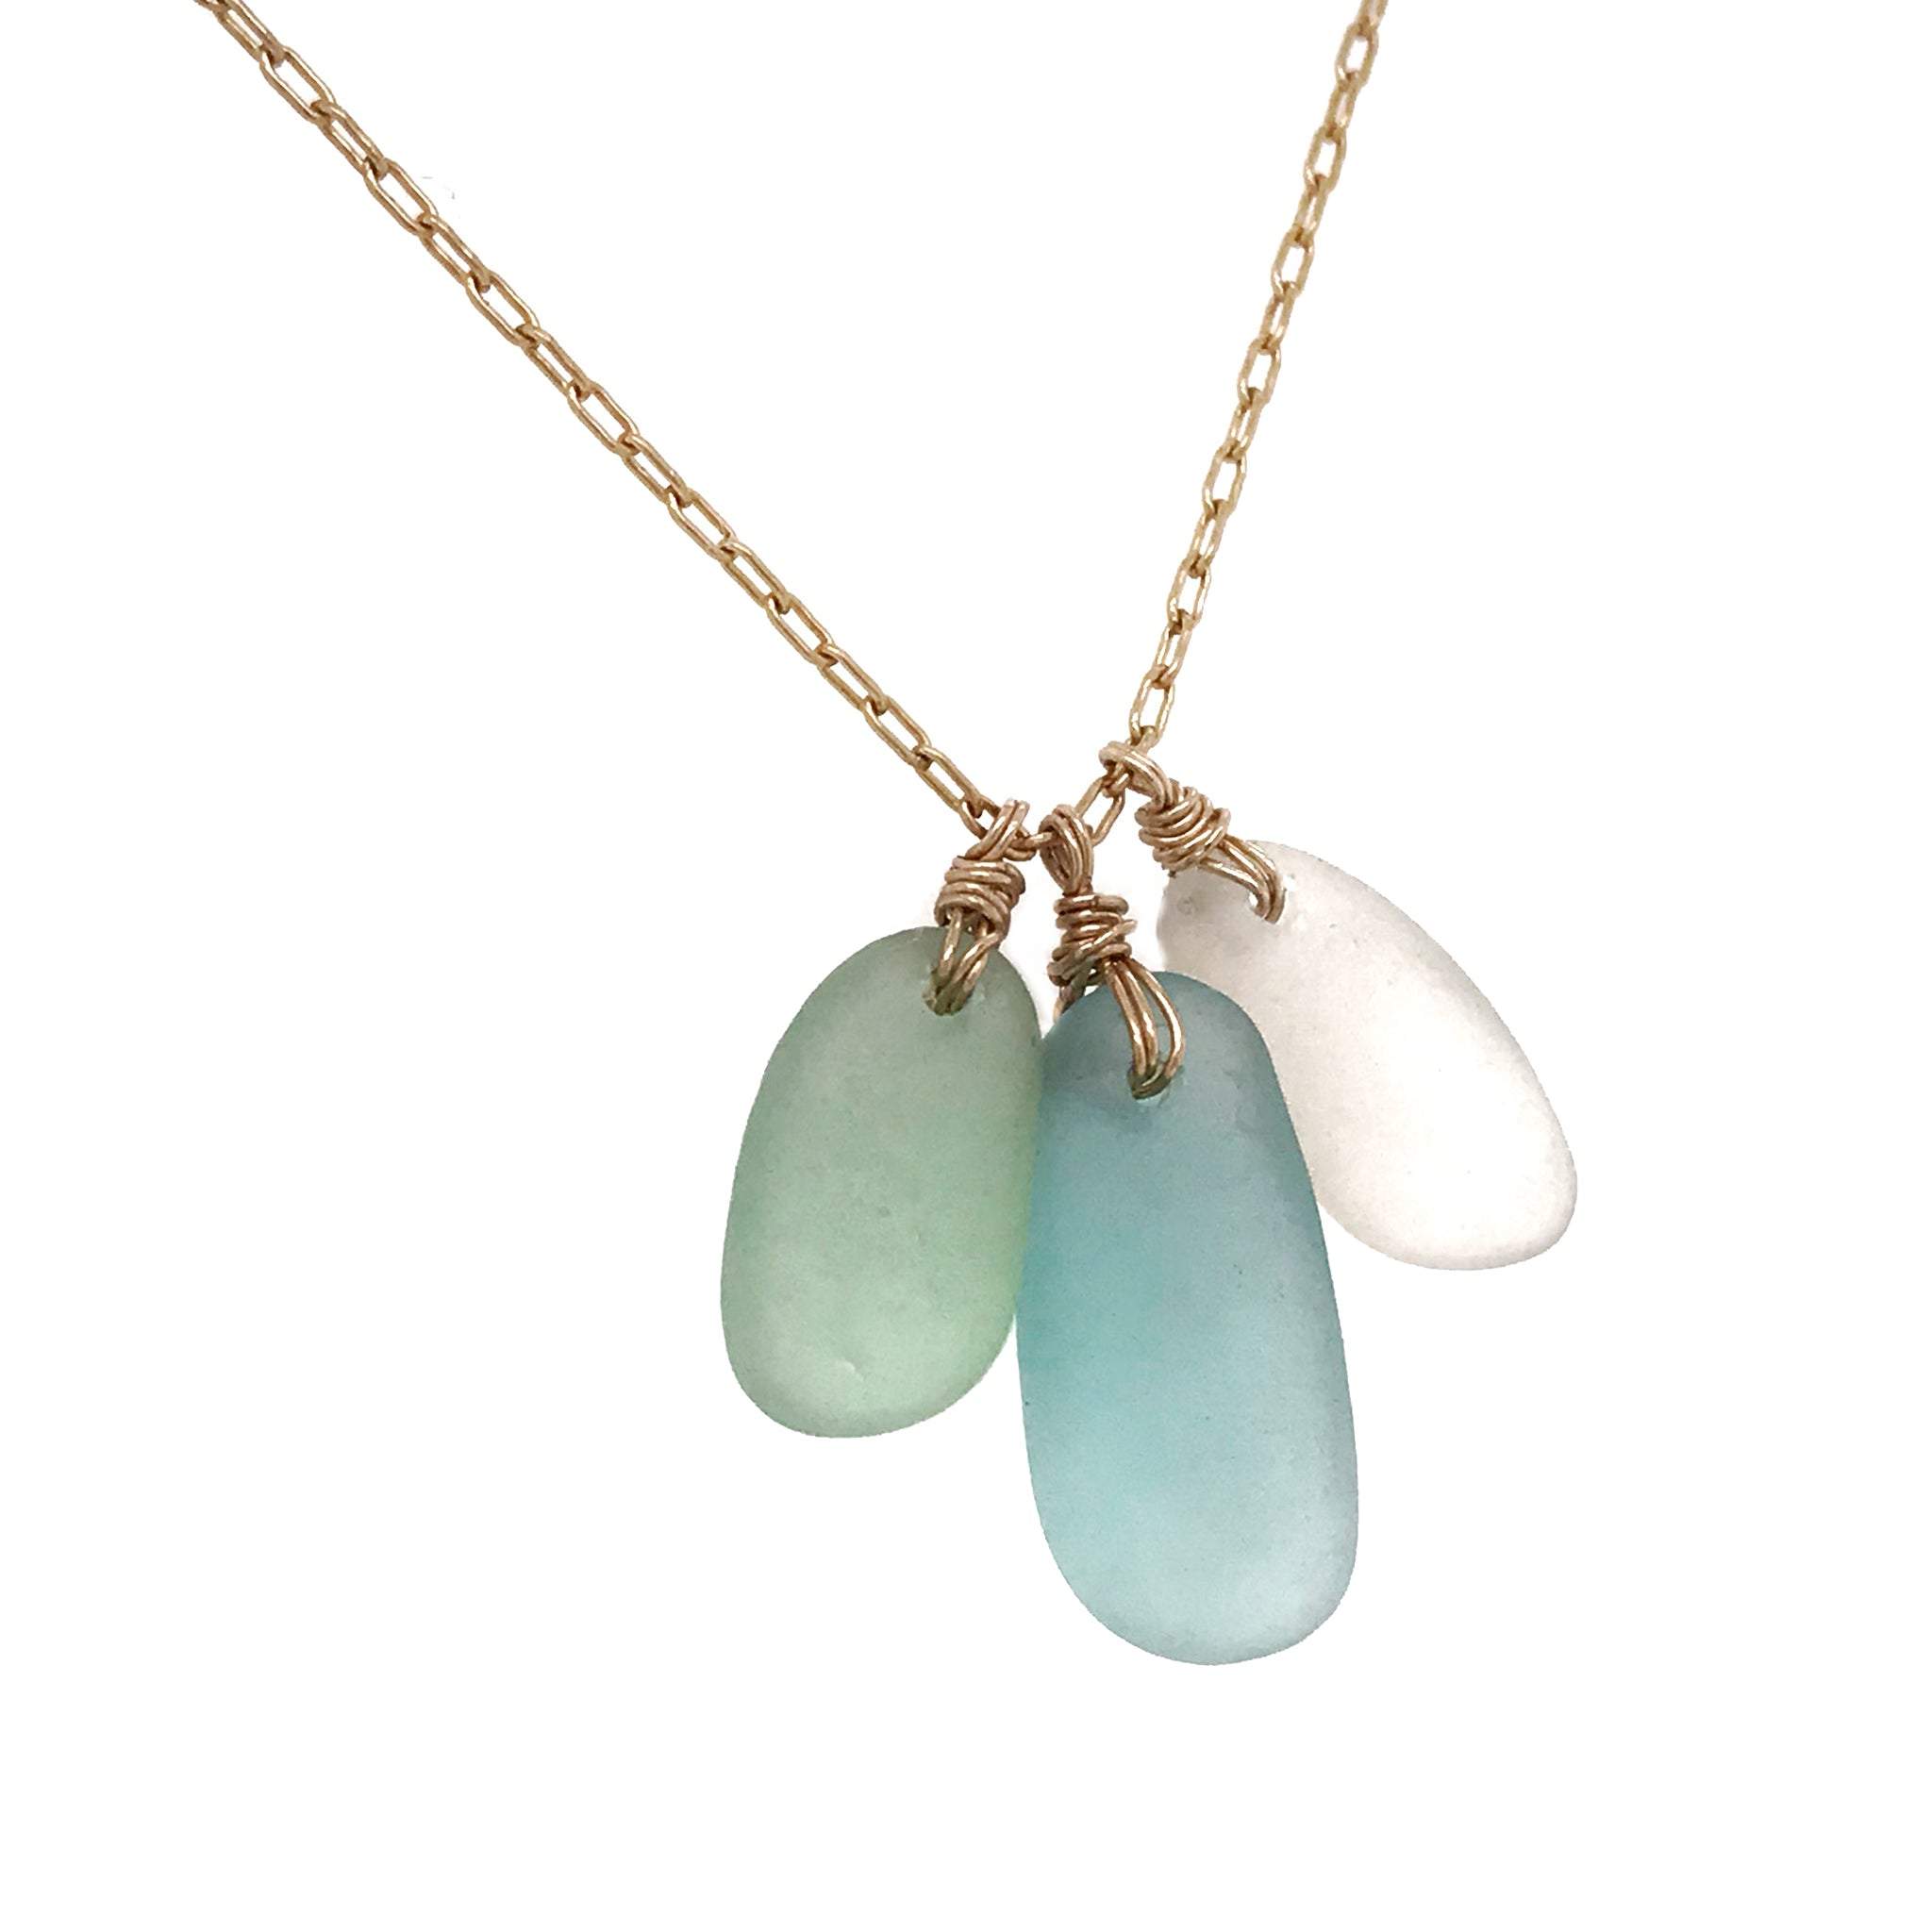 seaglass necklace multi-coloured on gold chain kriket broadhurst jewellery Australia